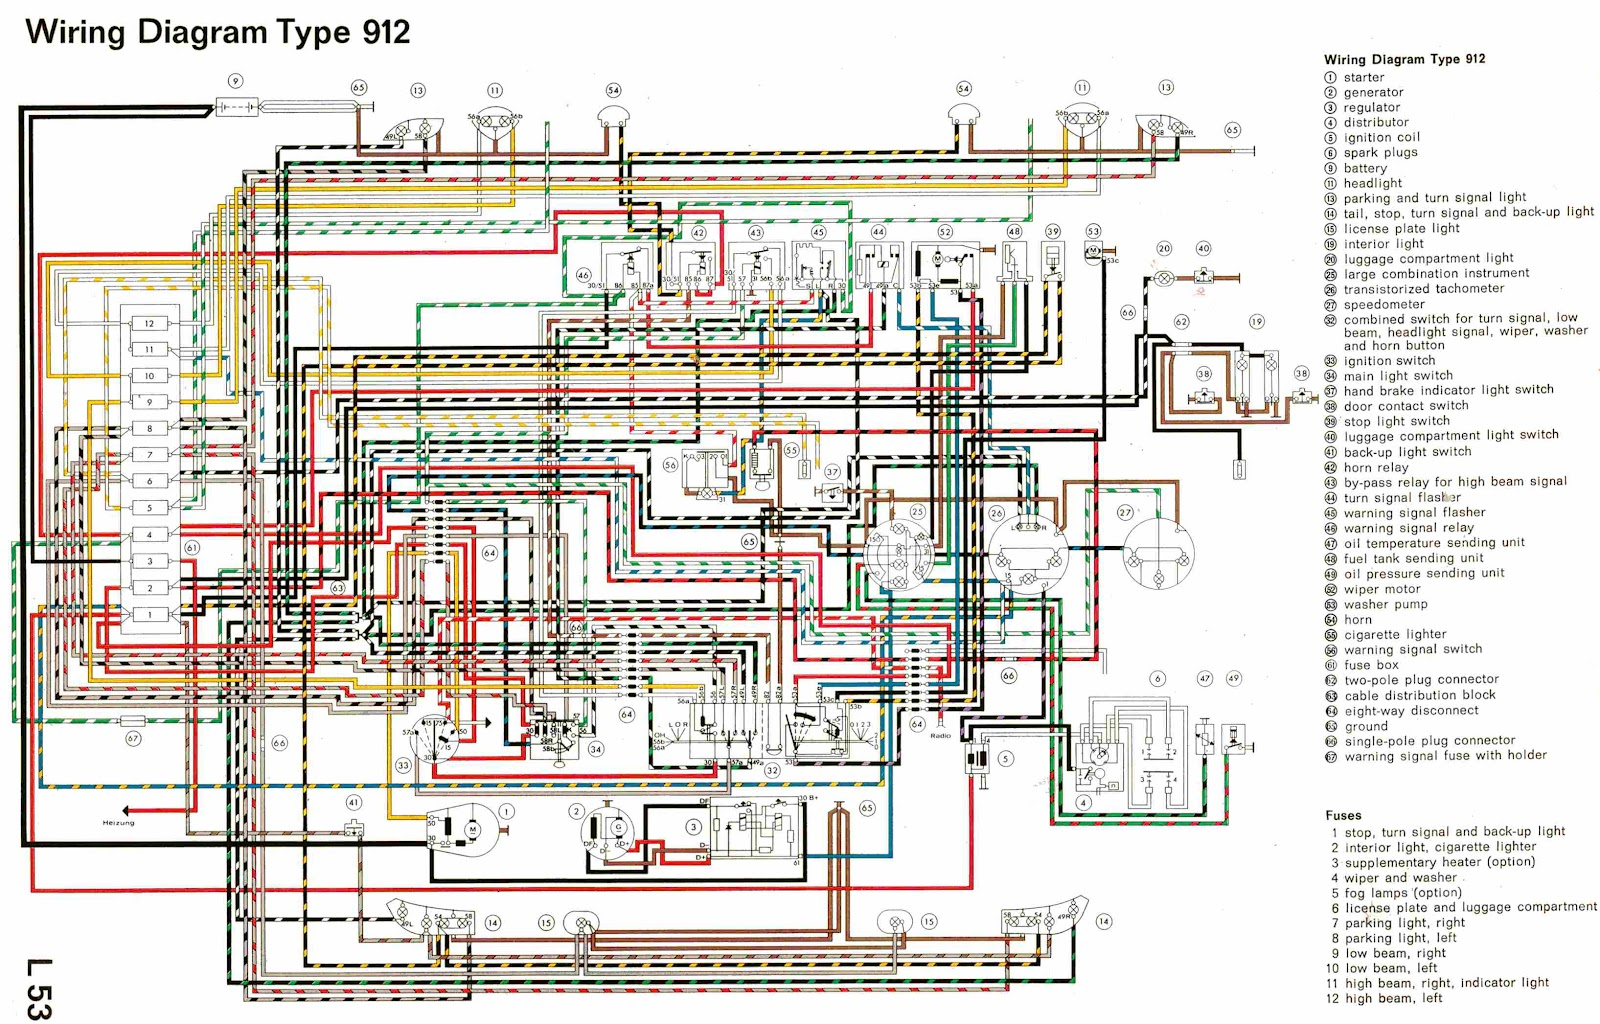 Elec Wiring Diagram : Porsche type complete electrical wiring diagram all